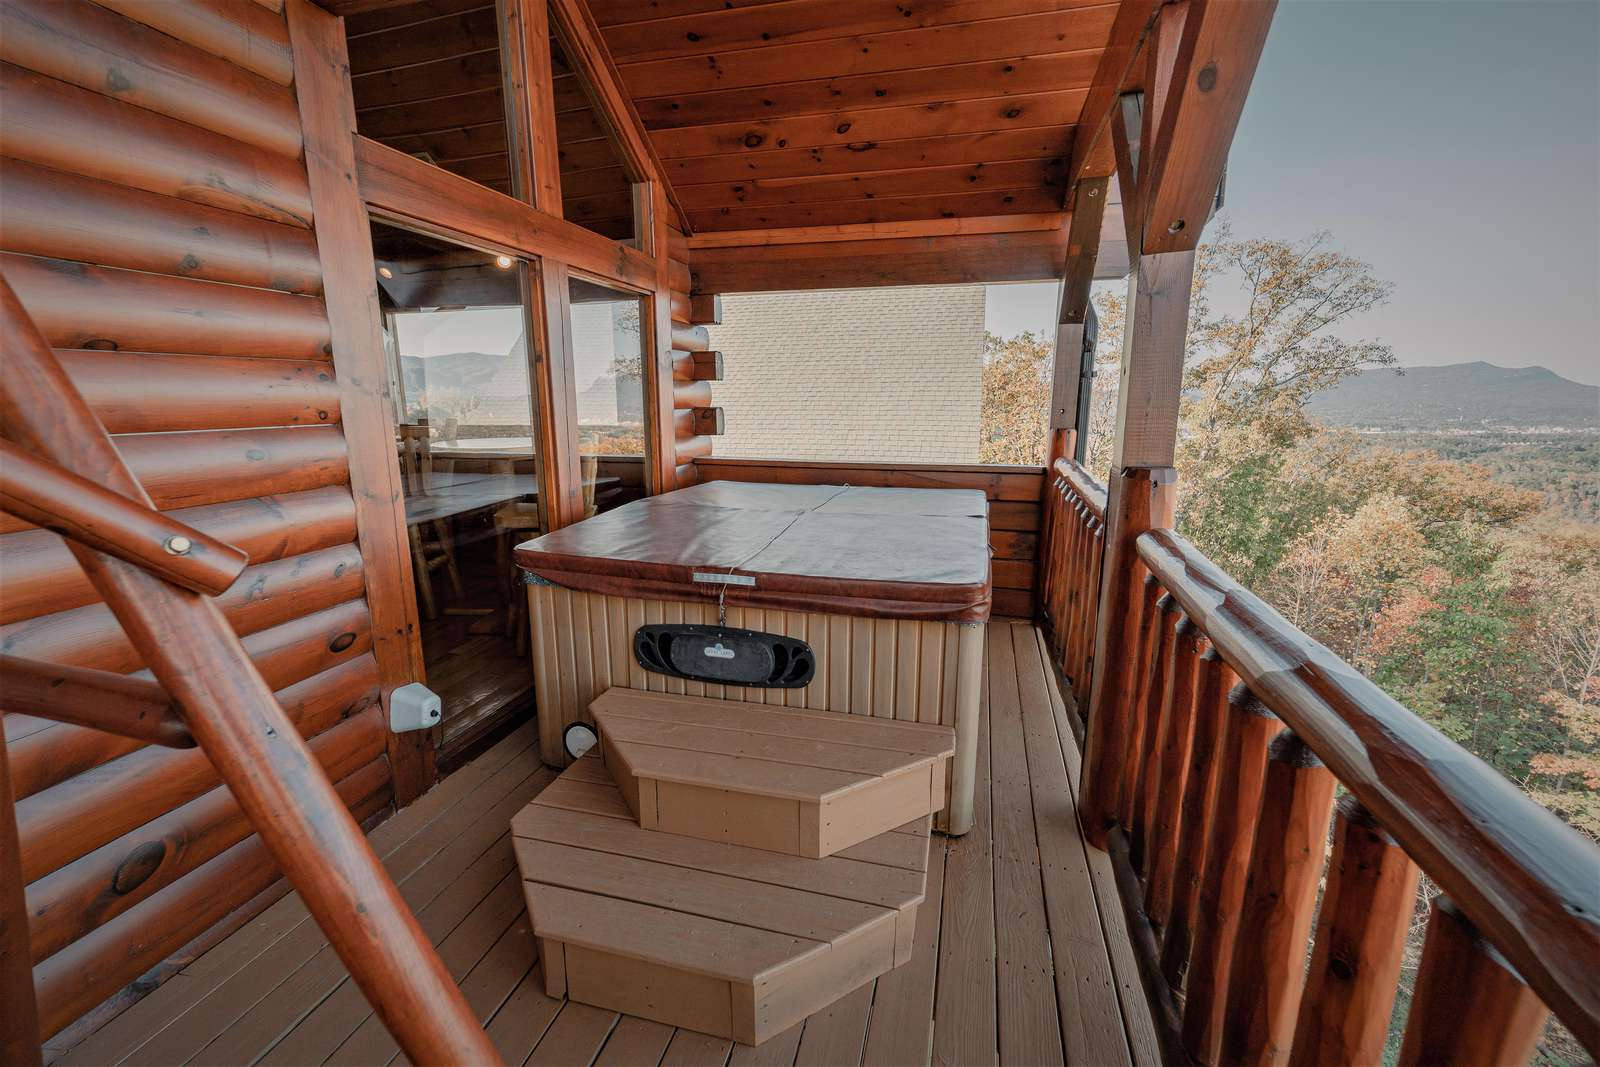 Hot tub is located on the 2nd level balcony